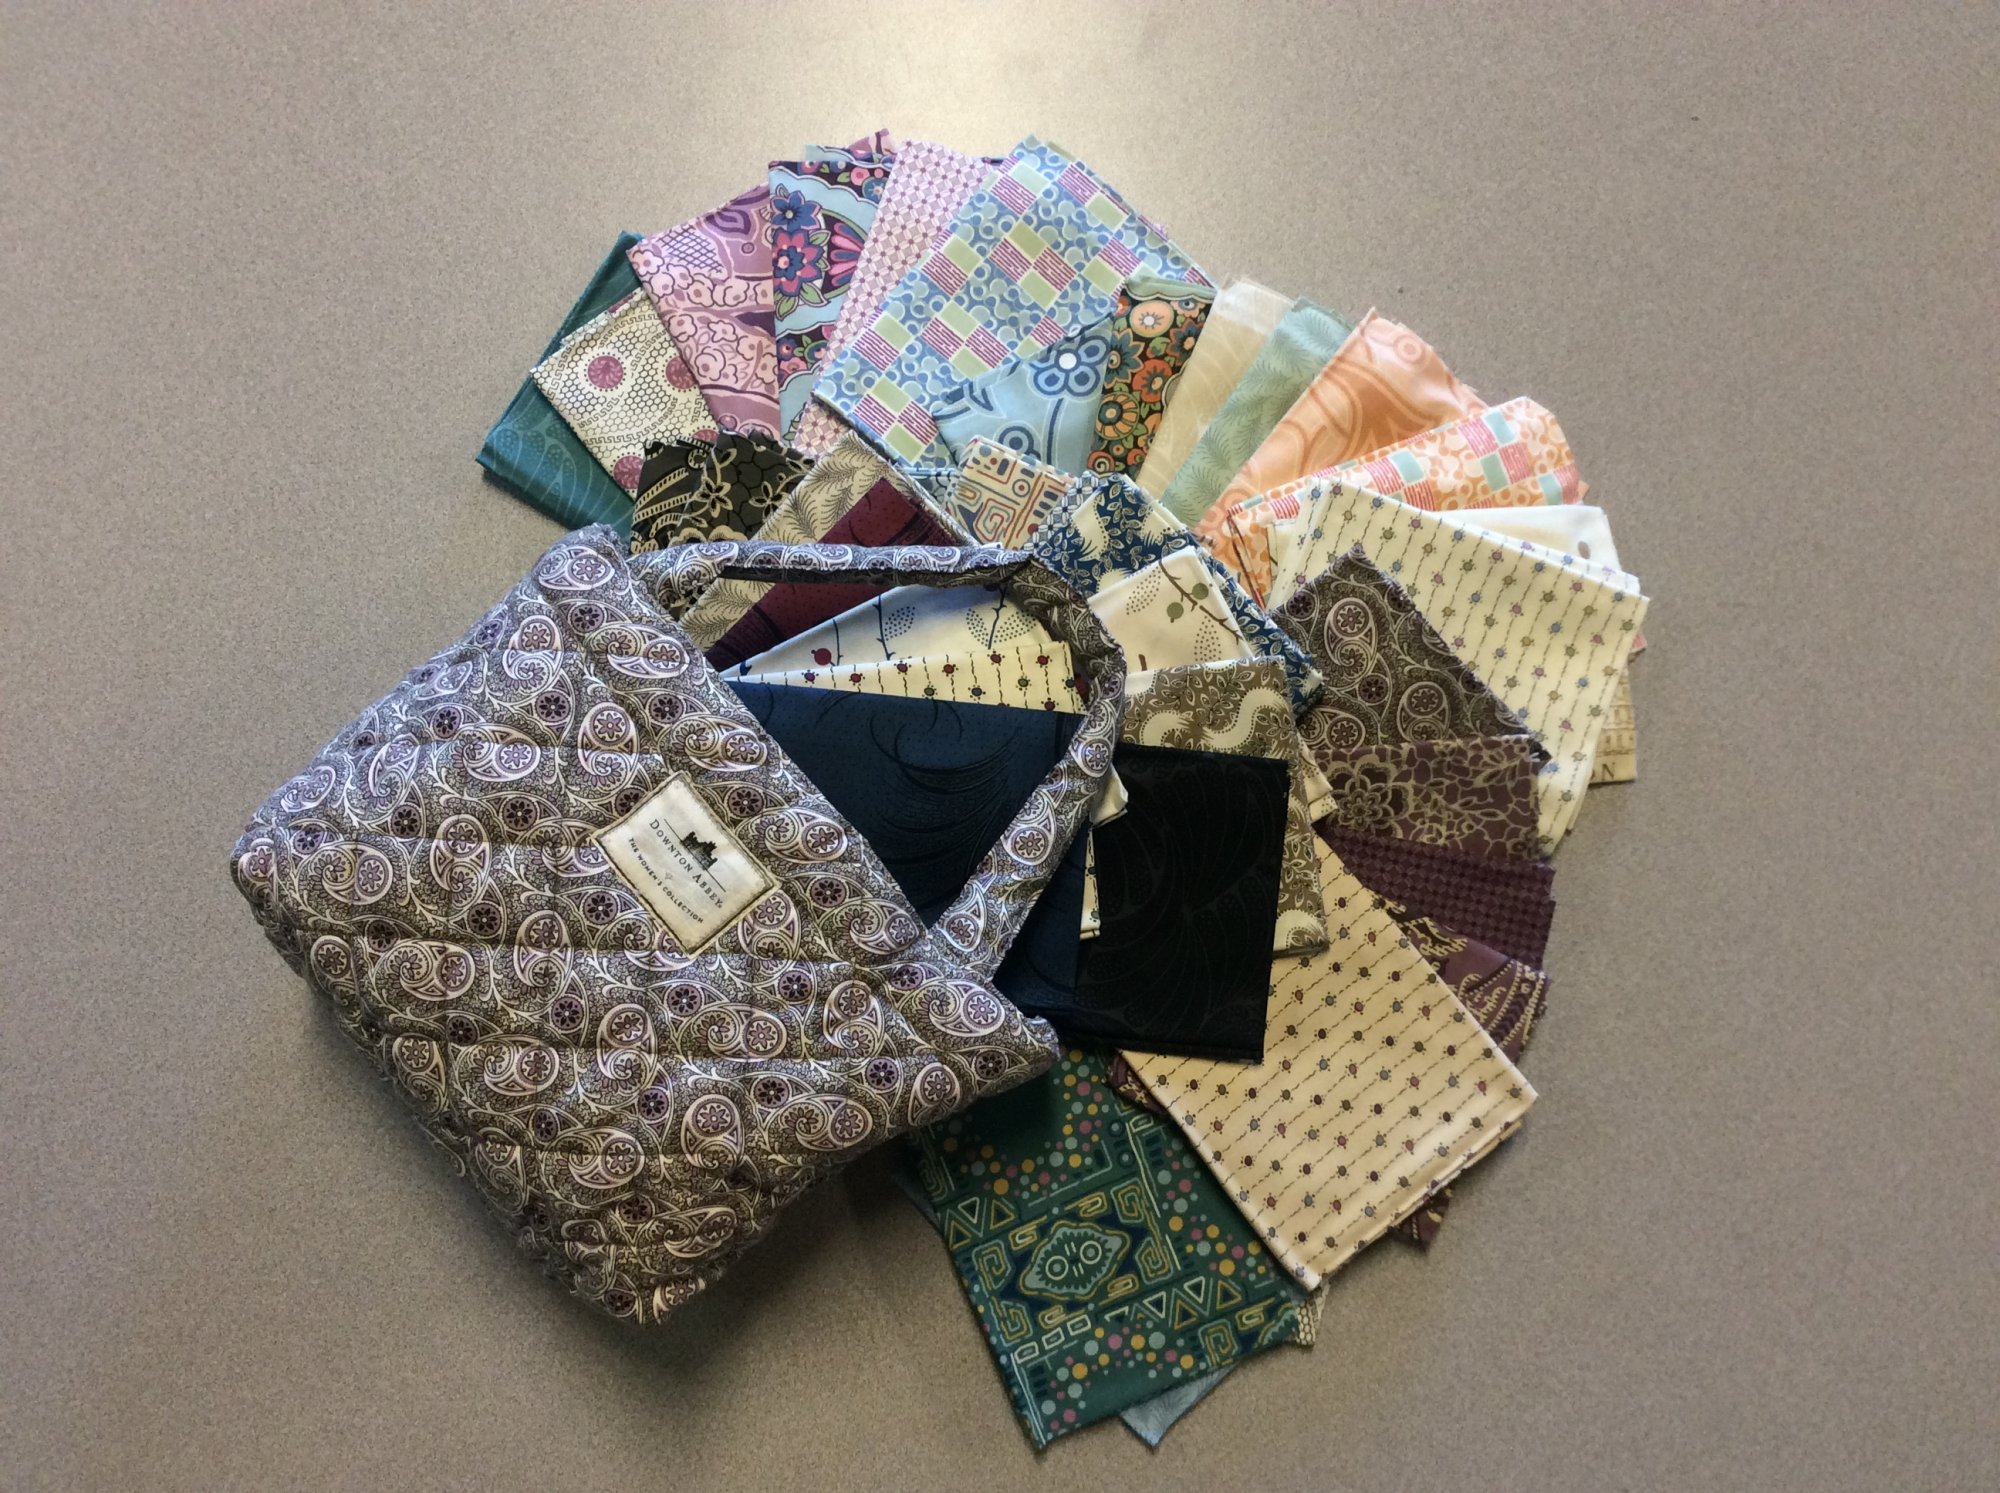 Downton Abbey Fat Quarter Bundle and Totebag Andover Fabrics Gift Set 37 Fabric Piece ND003